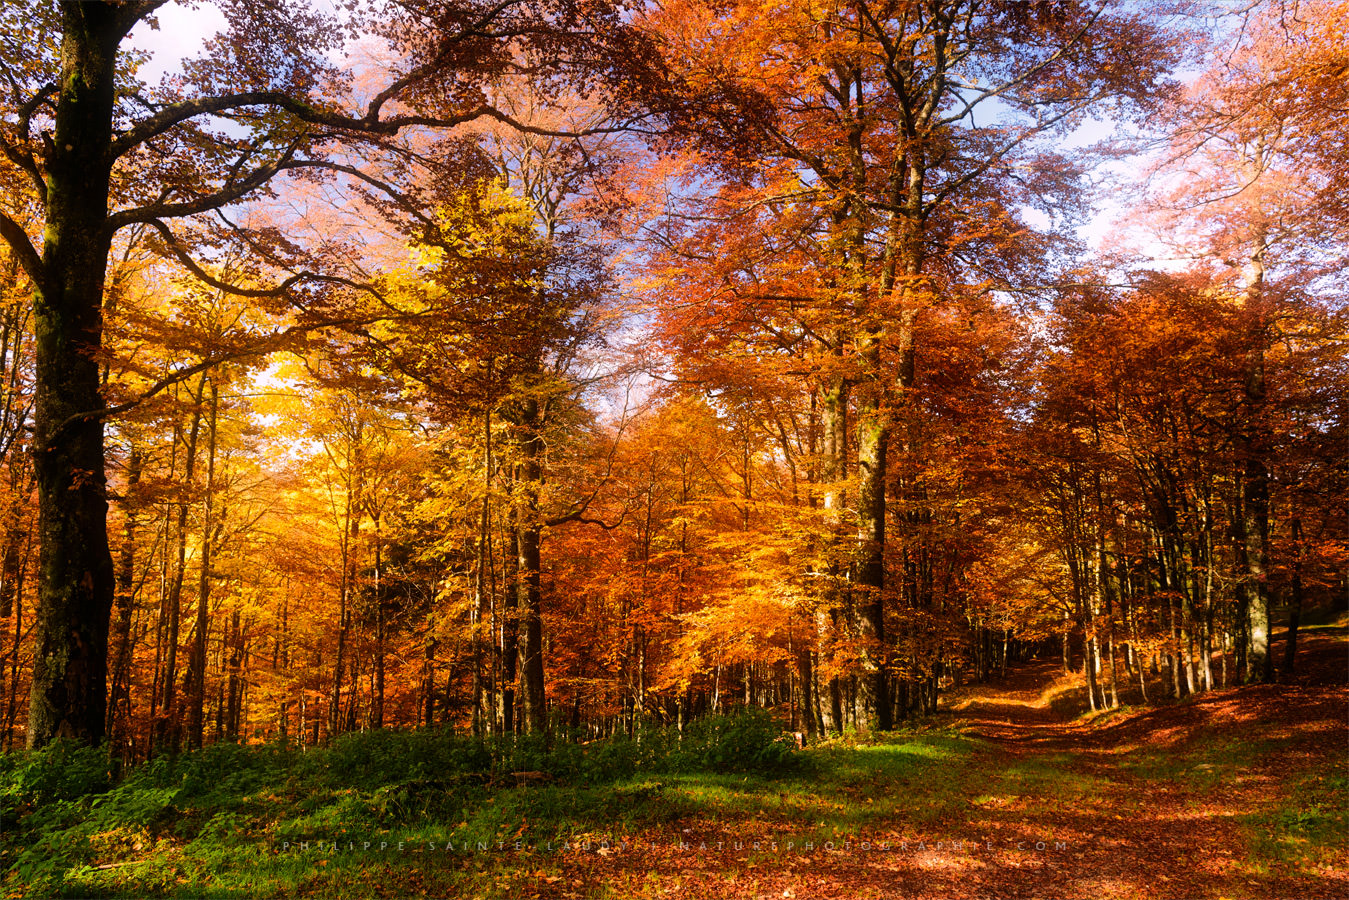 The Multicolored Forest